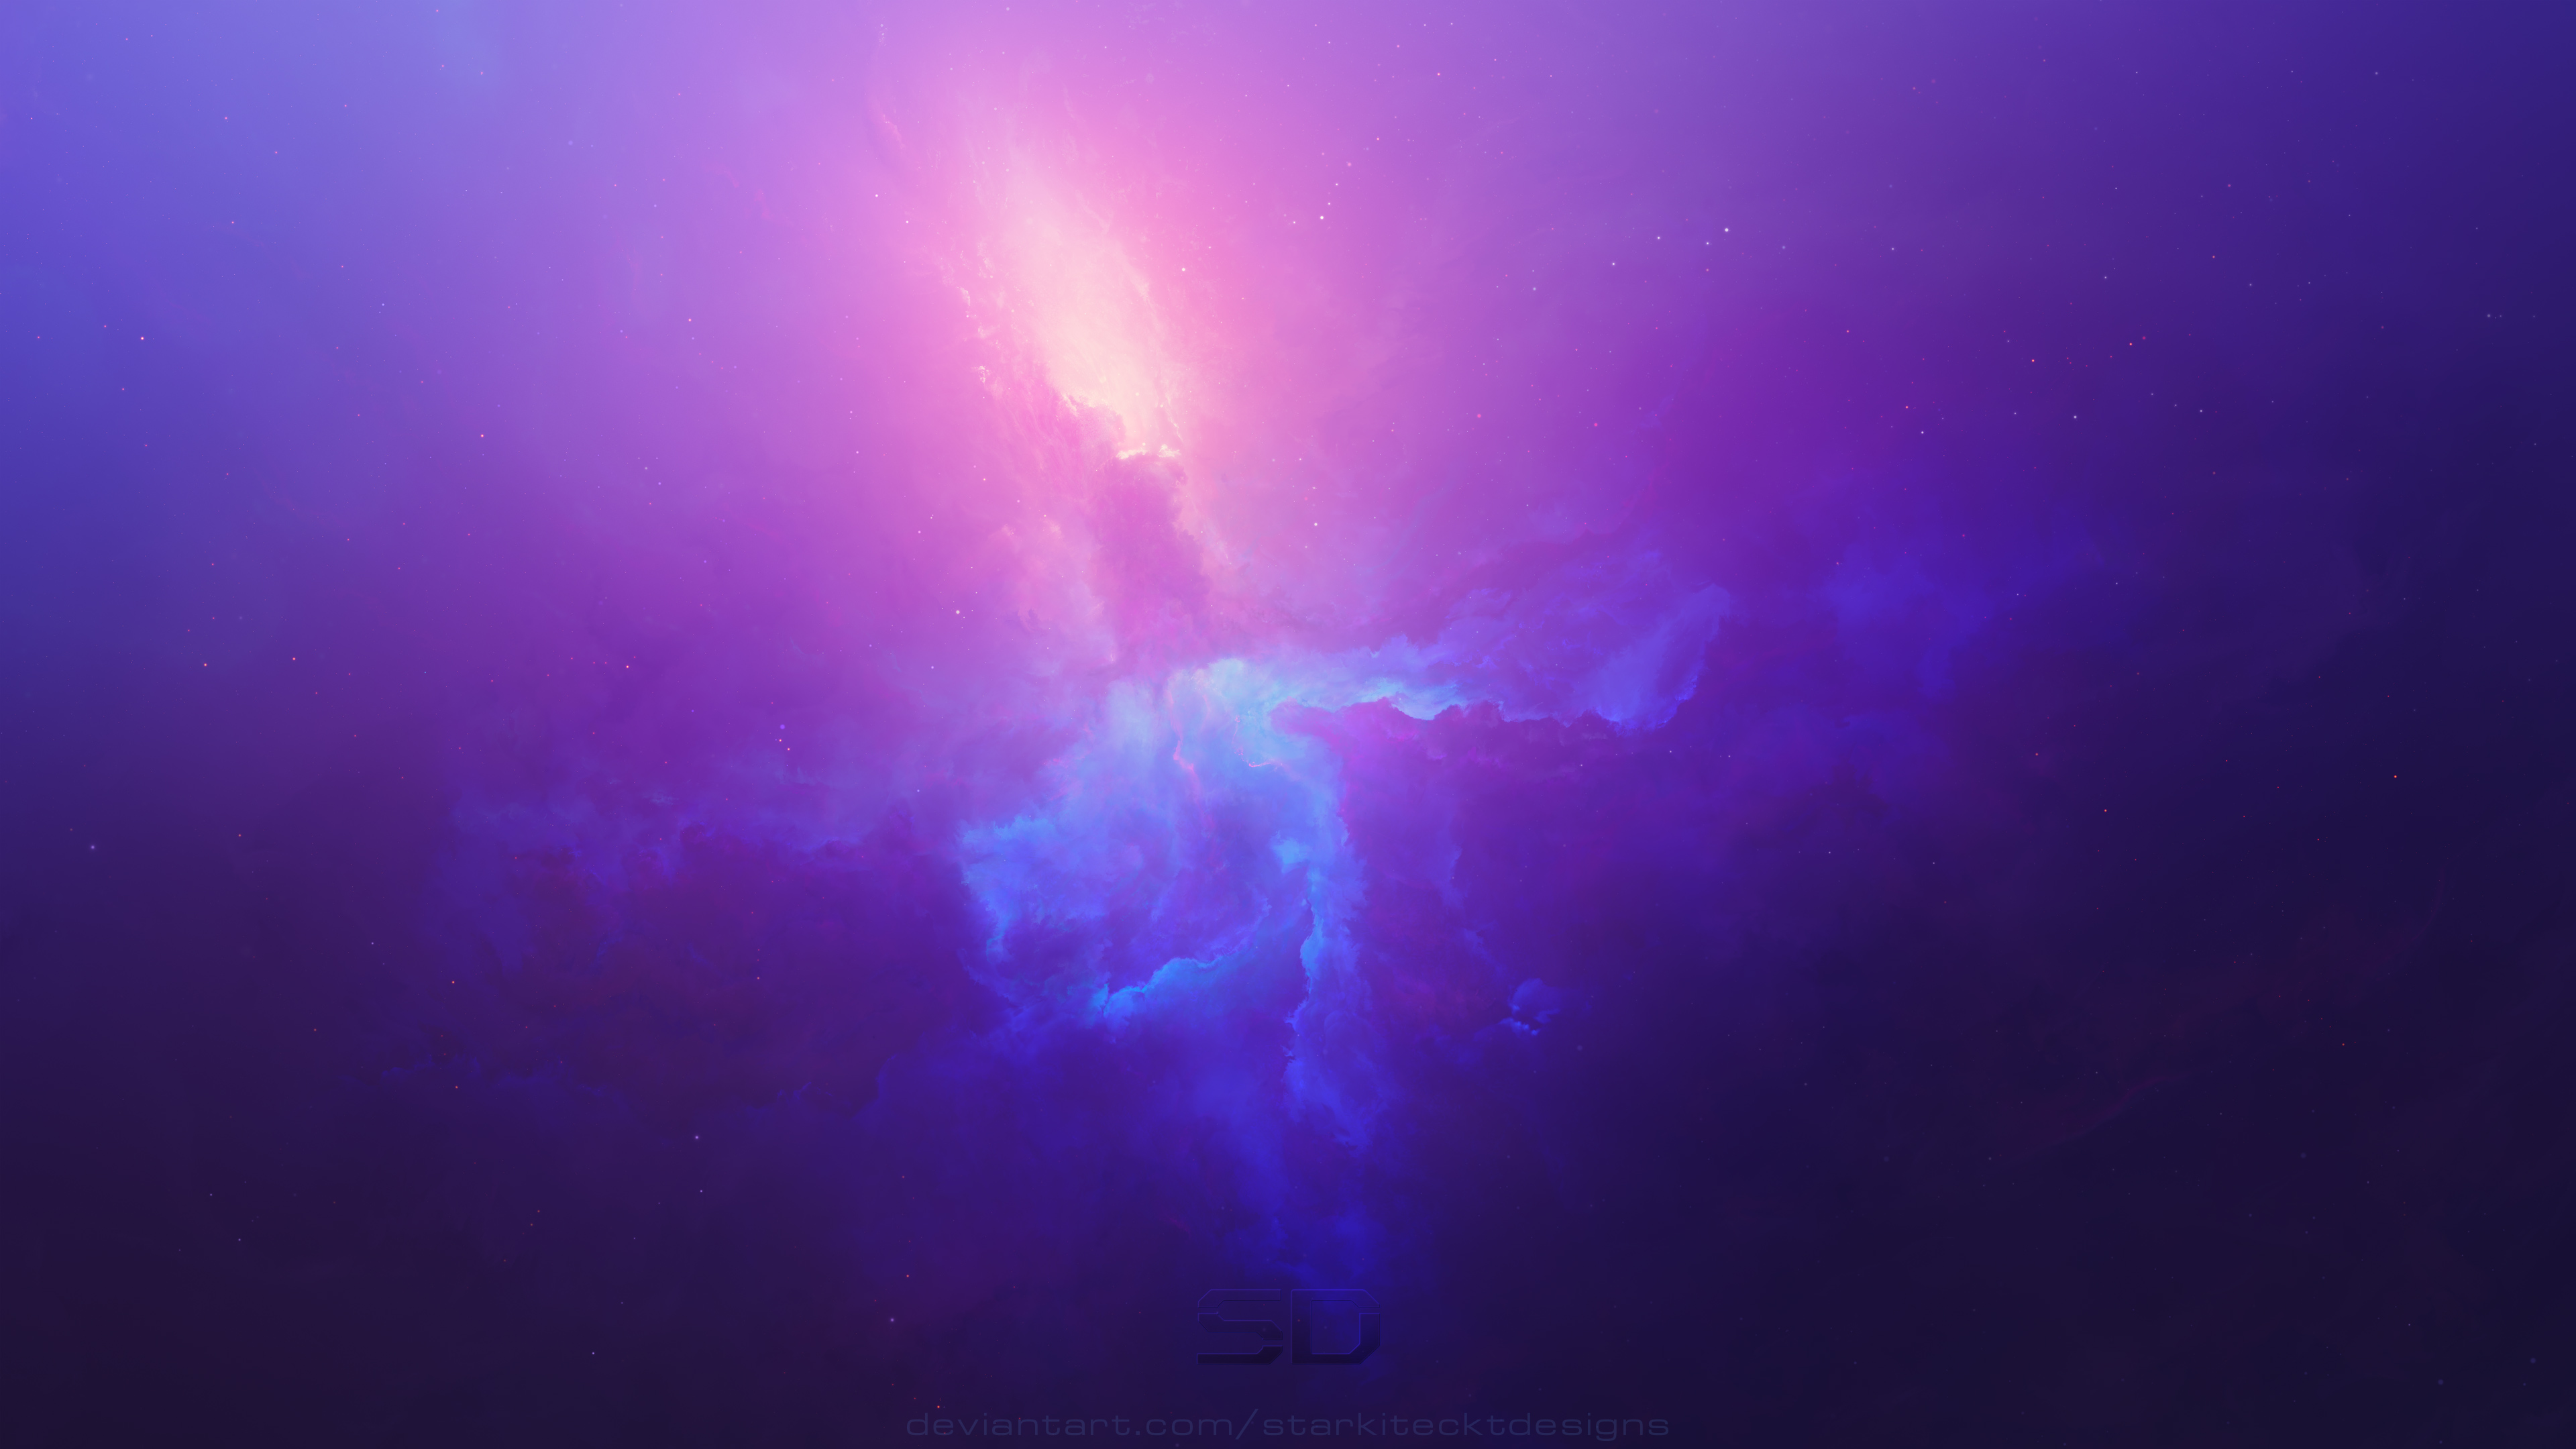 purple space cosmos abstract 4k 3h